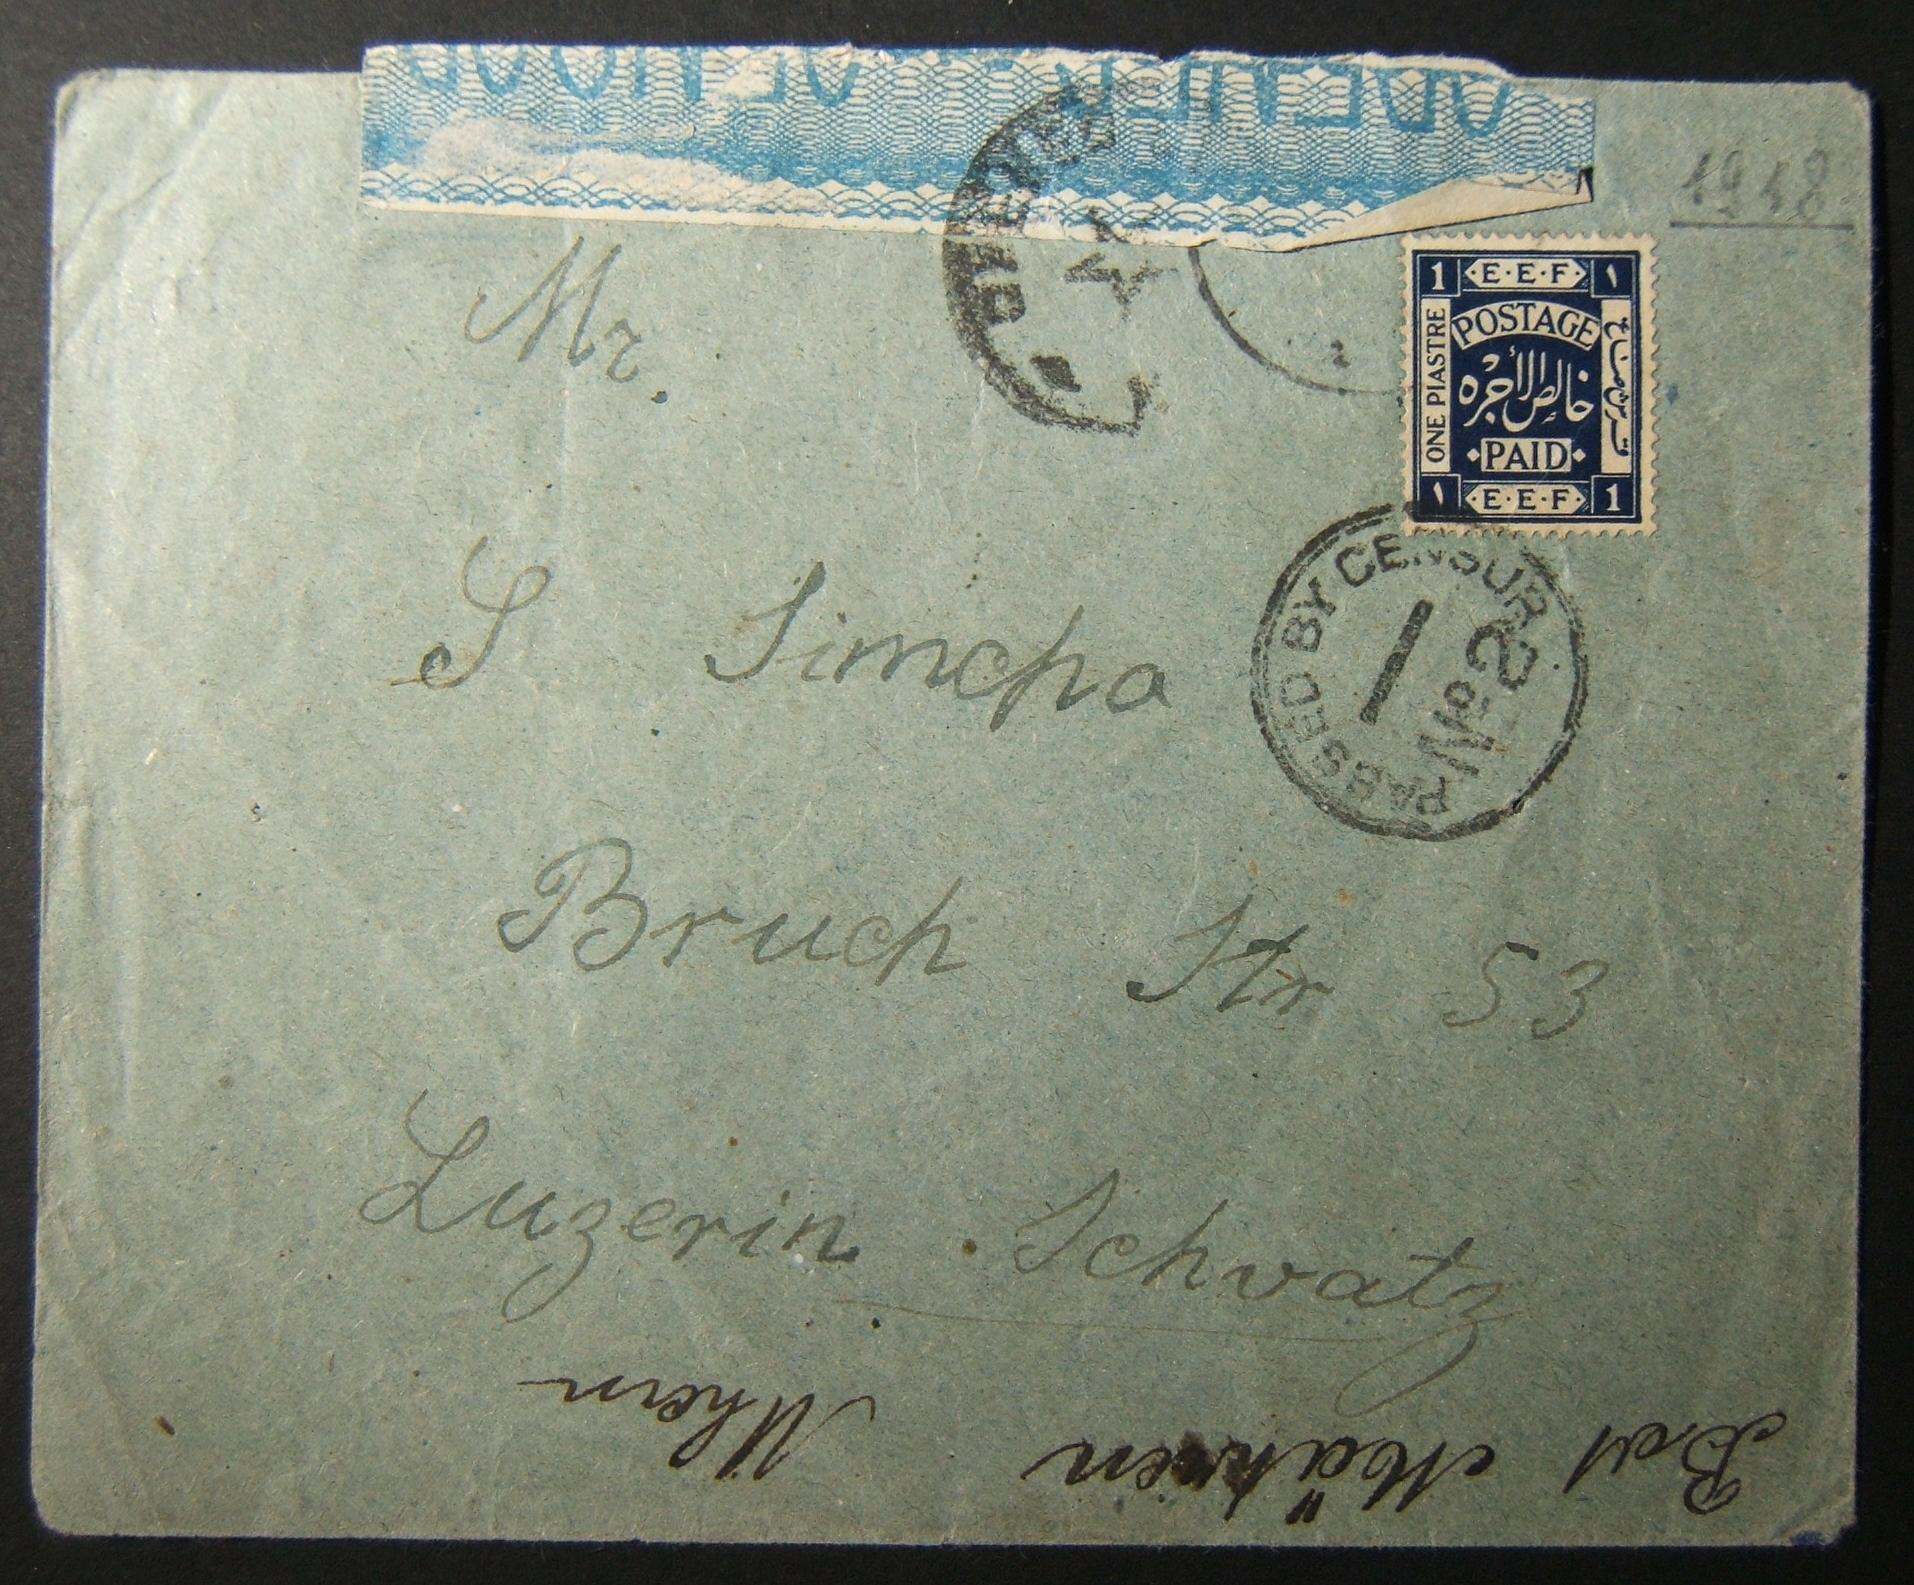 Mandate stamps / period 3: 10 SP 19 cv ex JERUSALEM to LUZERN franked at period 1 Pia rate using Ba10 stamp tied by faint OETA EEF JERUSALEM pmk Sacher-A8; opened & resealed by Bri